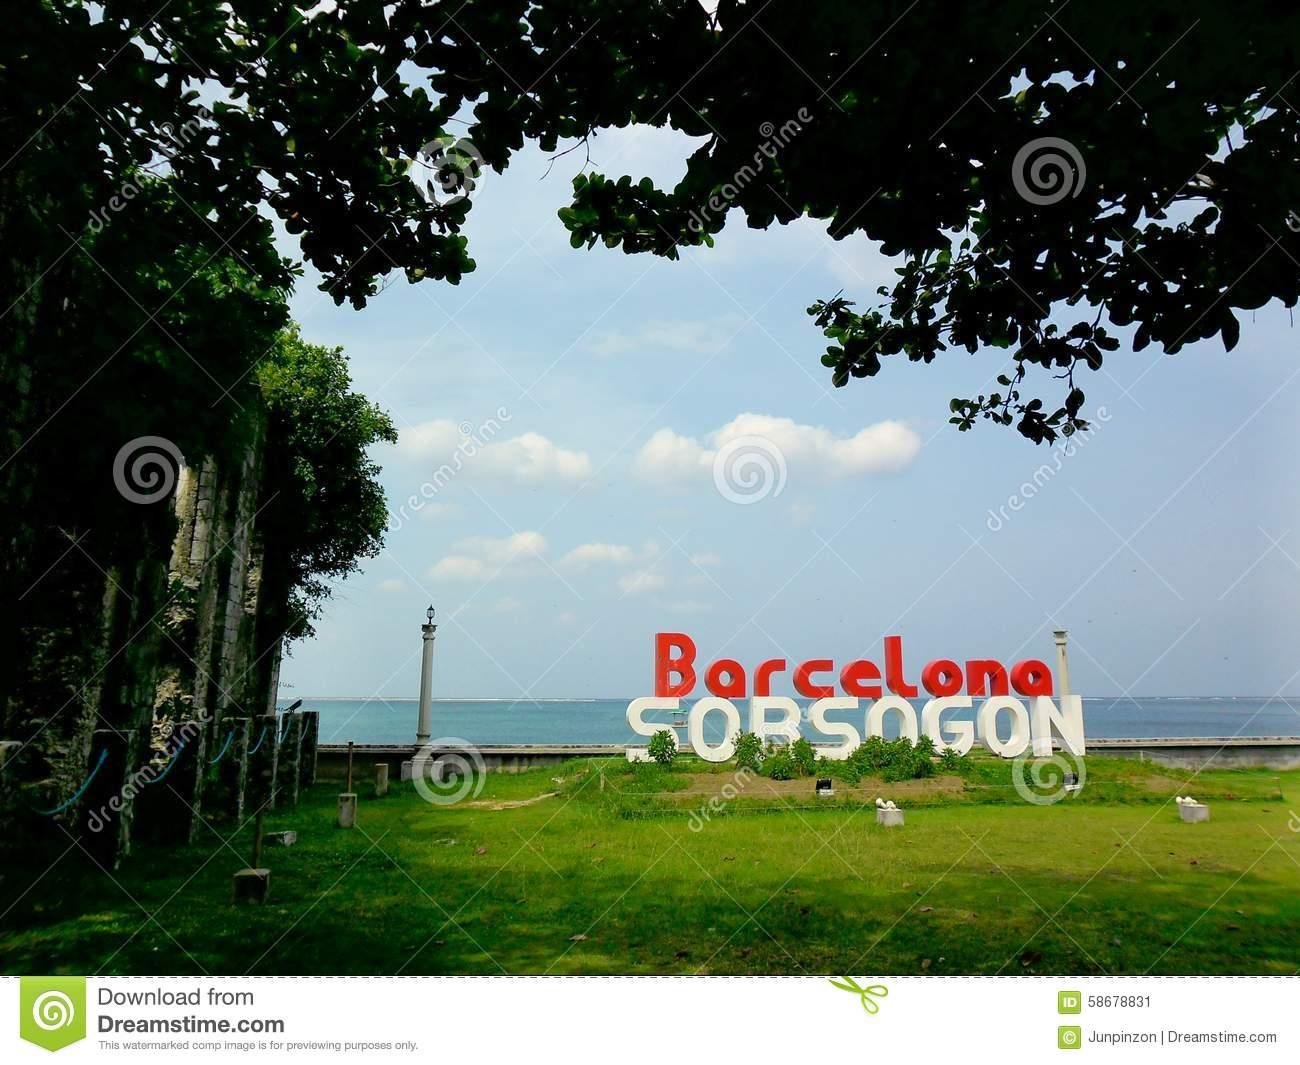 Old Church Ruins And The Barcelona, Sorsogon Sign Stock Photo.